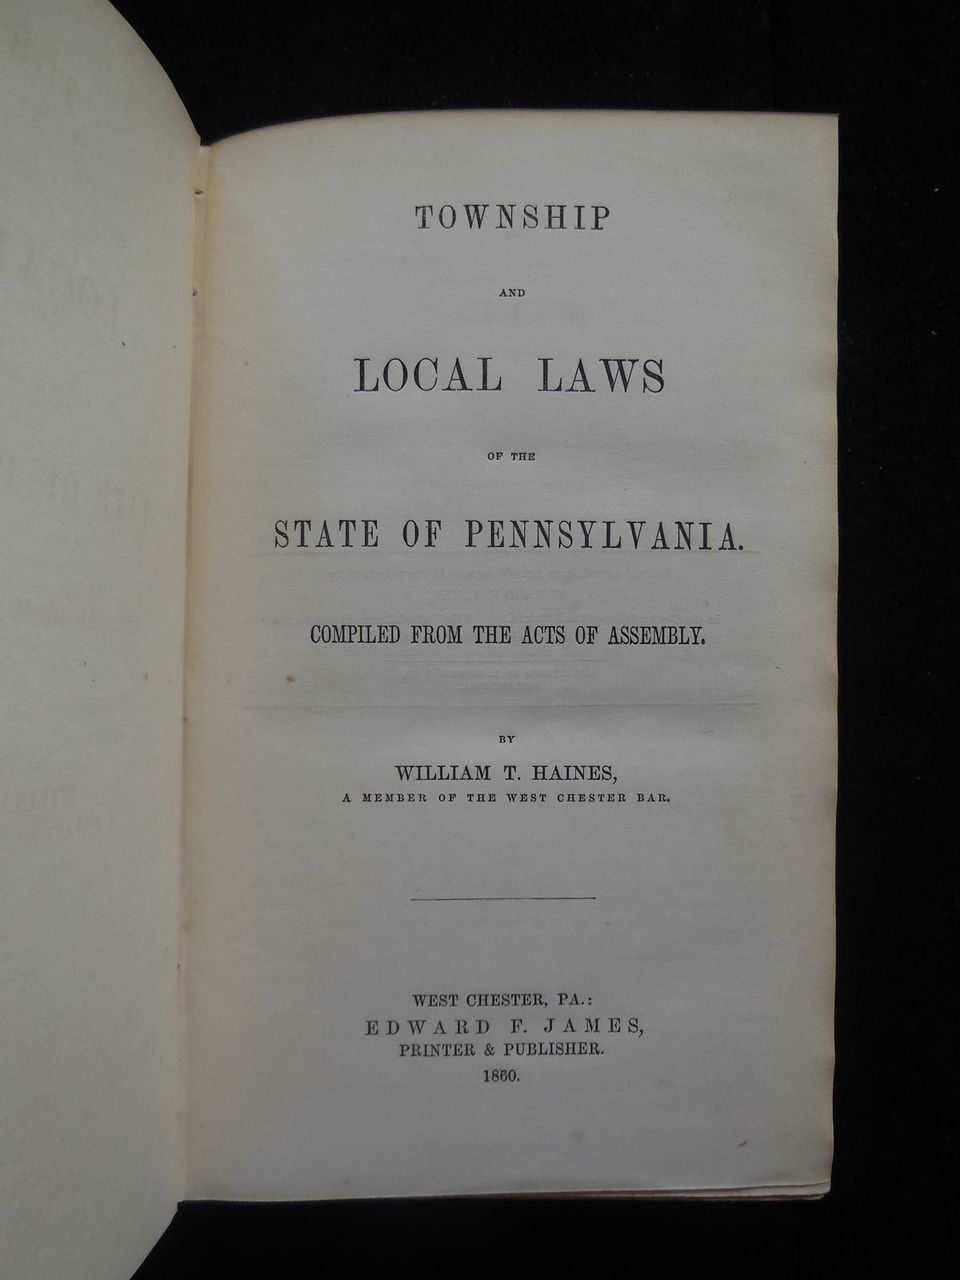 LOCAL LAWS OF PENNSYLVANIA, by William T. Haines - 1860